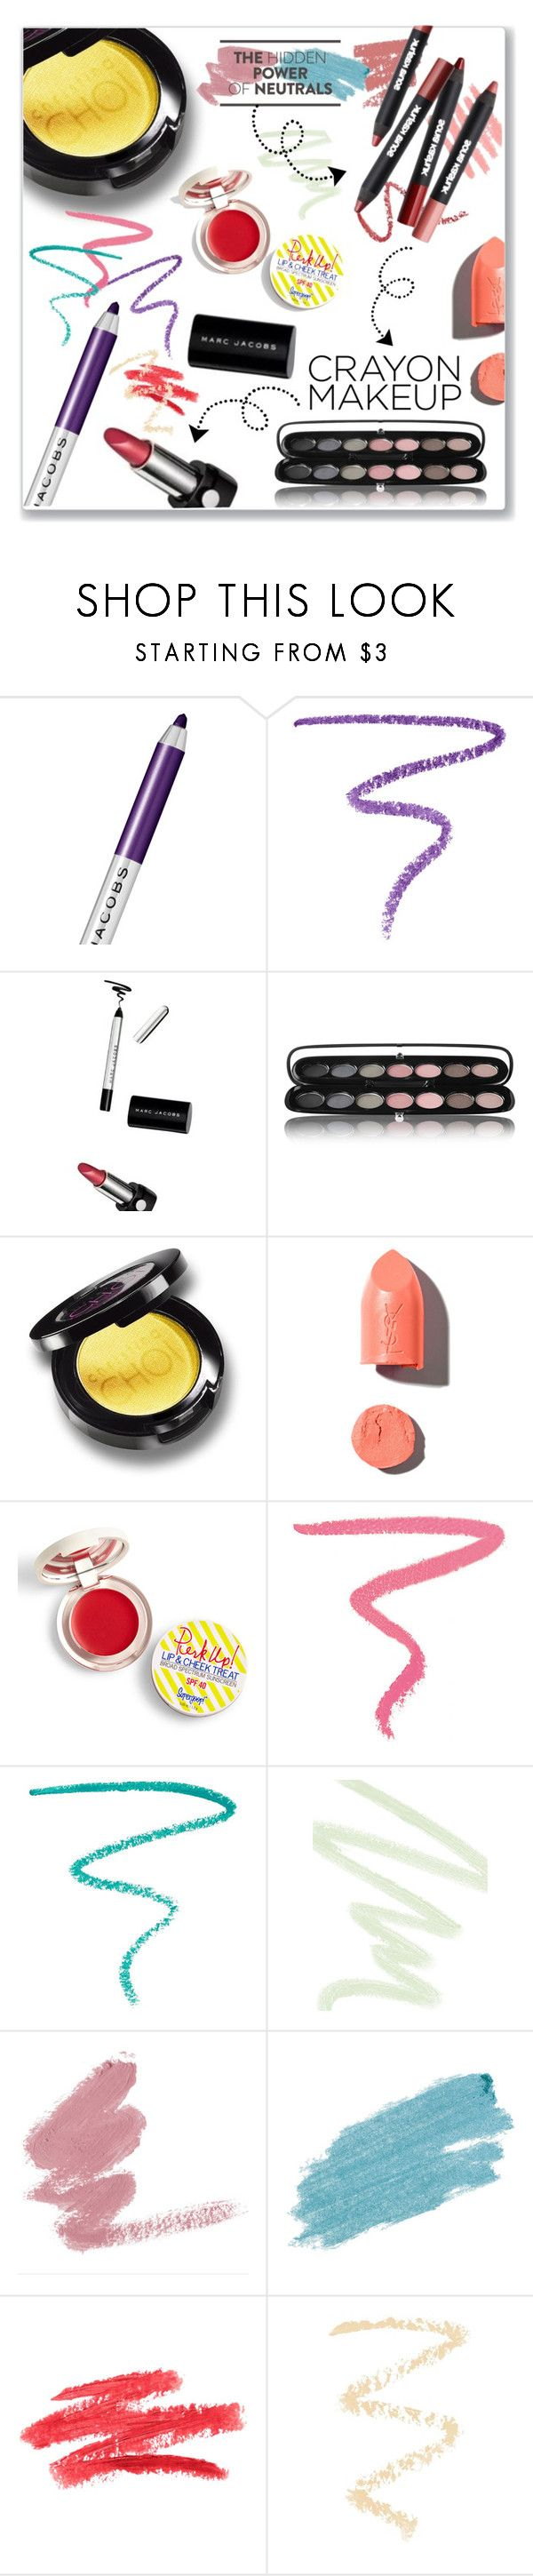 """Crayon Makeup"" by achernar ❤ liked on Polyvore featuring beauty, Marc Jacobs, PUR, Supergoop!, Ilia, Dolce&Gabbana, Jane Iredale and Topshop"